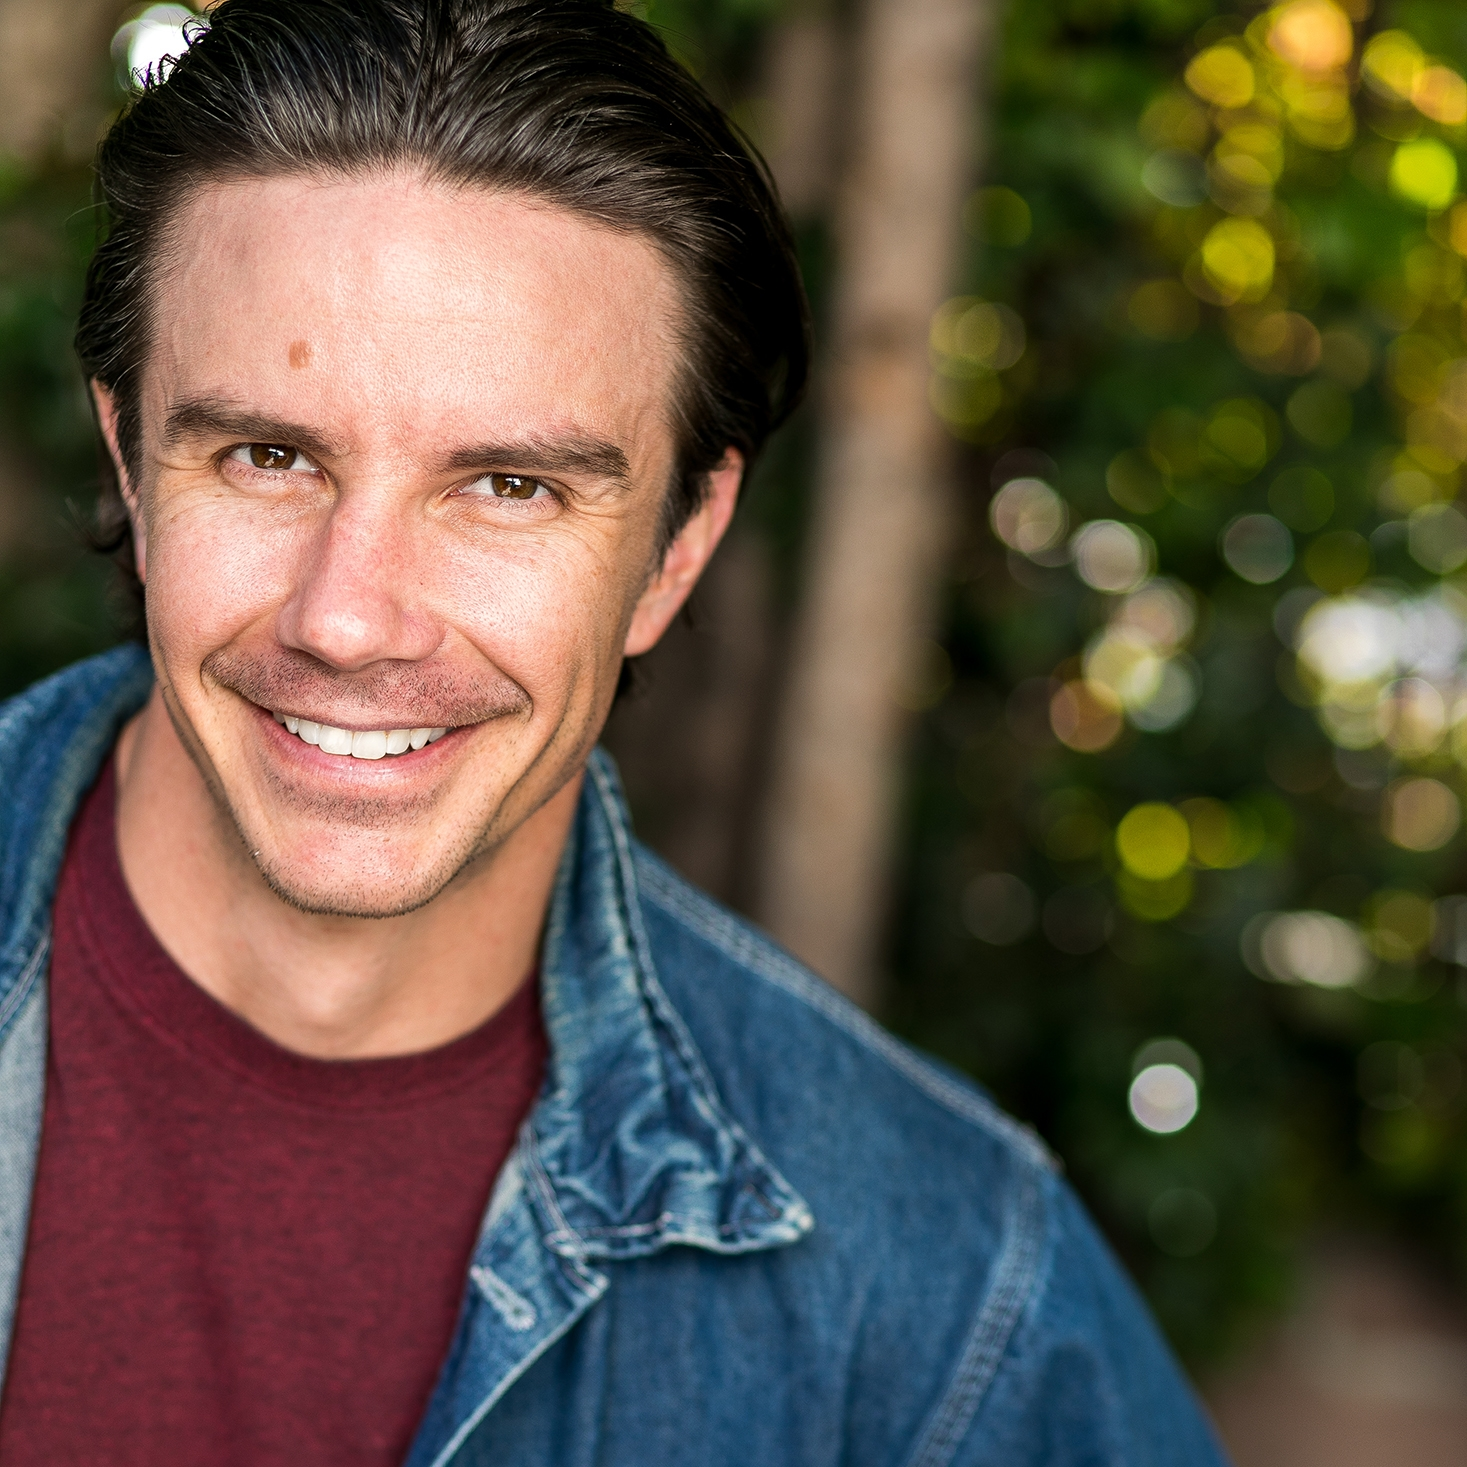 - Clayton is a Los Angeles based actor and voiceover artist who's recent work includes the romantic comedy Temps and a two season recurring role on MTV's Teen Wolf. When he's not acting, improvising, or screaming into a microphone, Clayton can be found on the side of a mountain or deep in a canyon, struggling for survival.